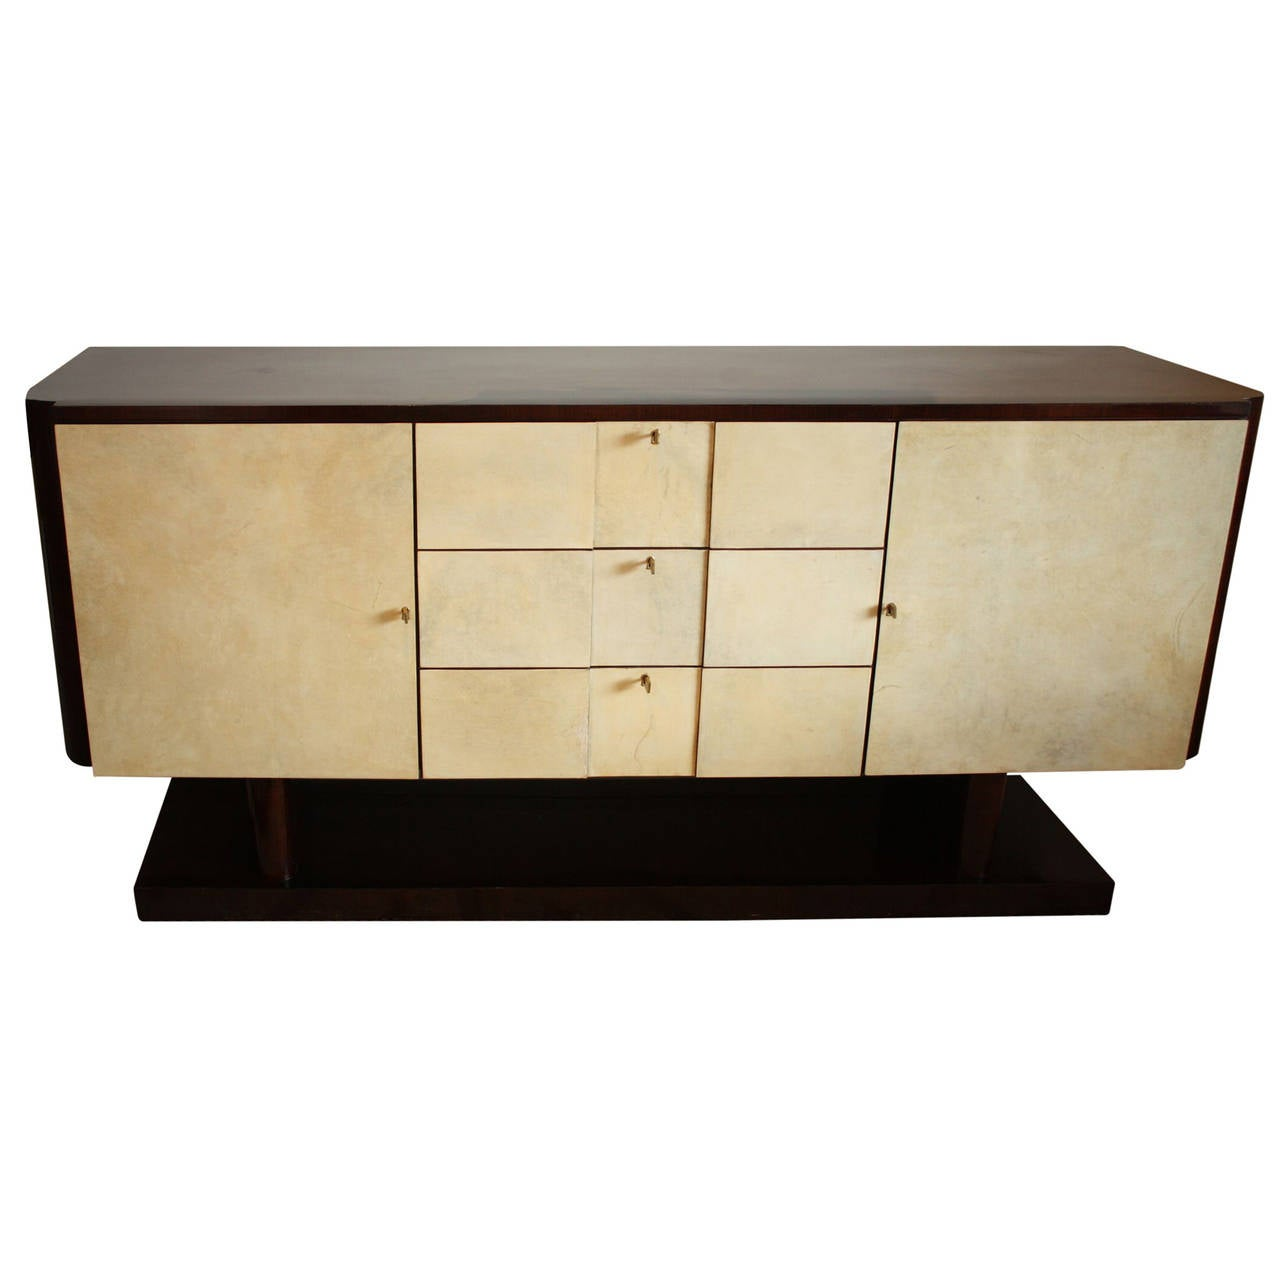 French Art Deco Cabinet 1